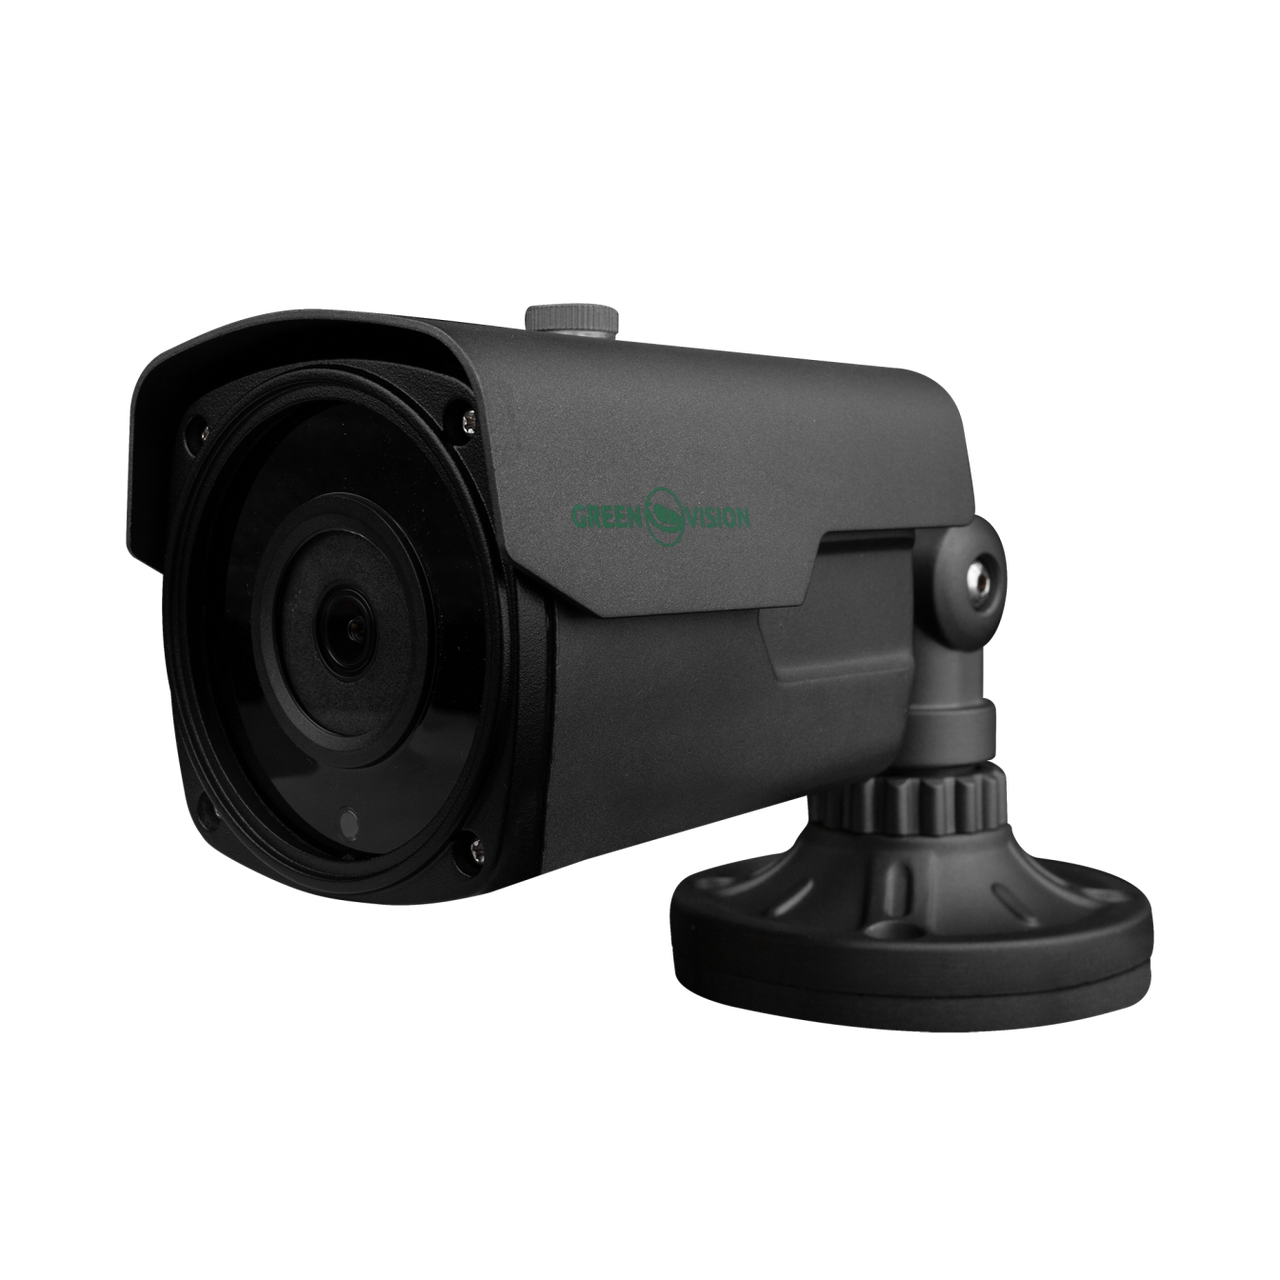 Наружная IP камера GreenVision GV-063-IP-E-COS50-40 Gray